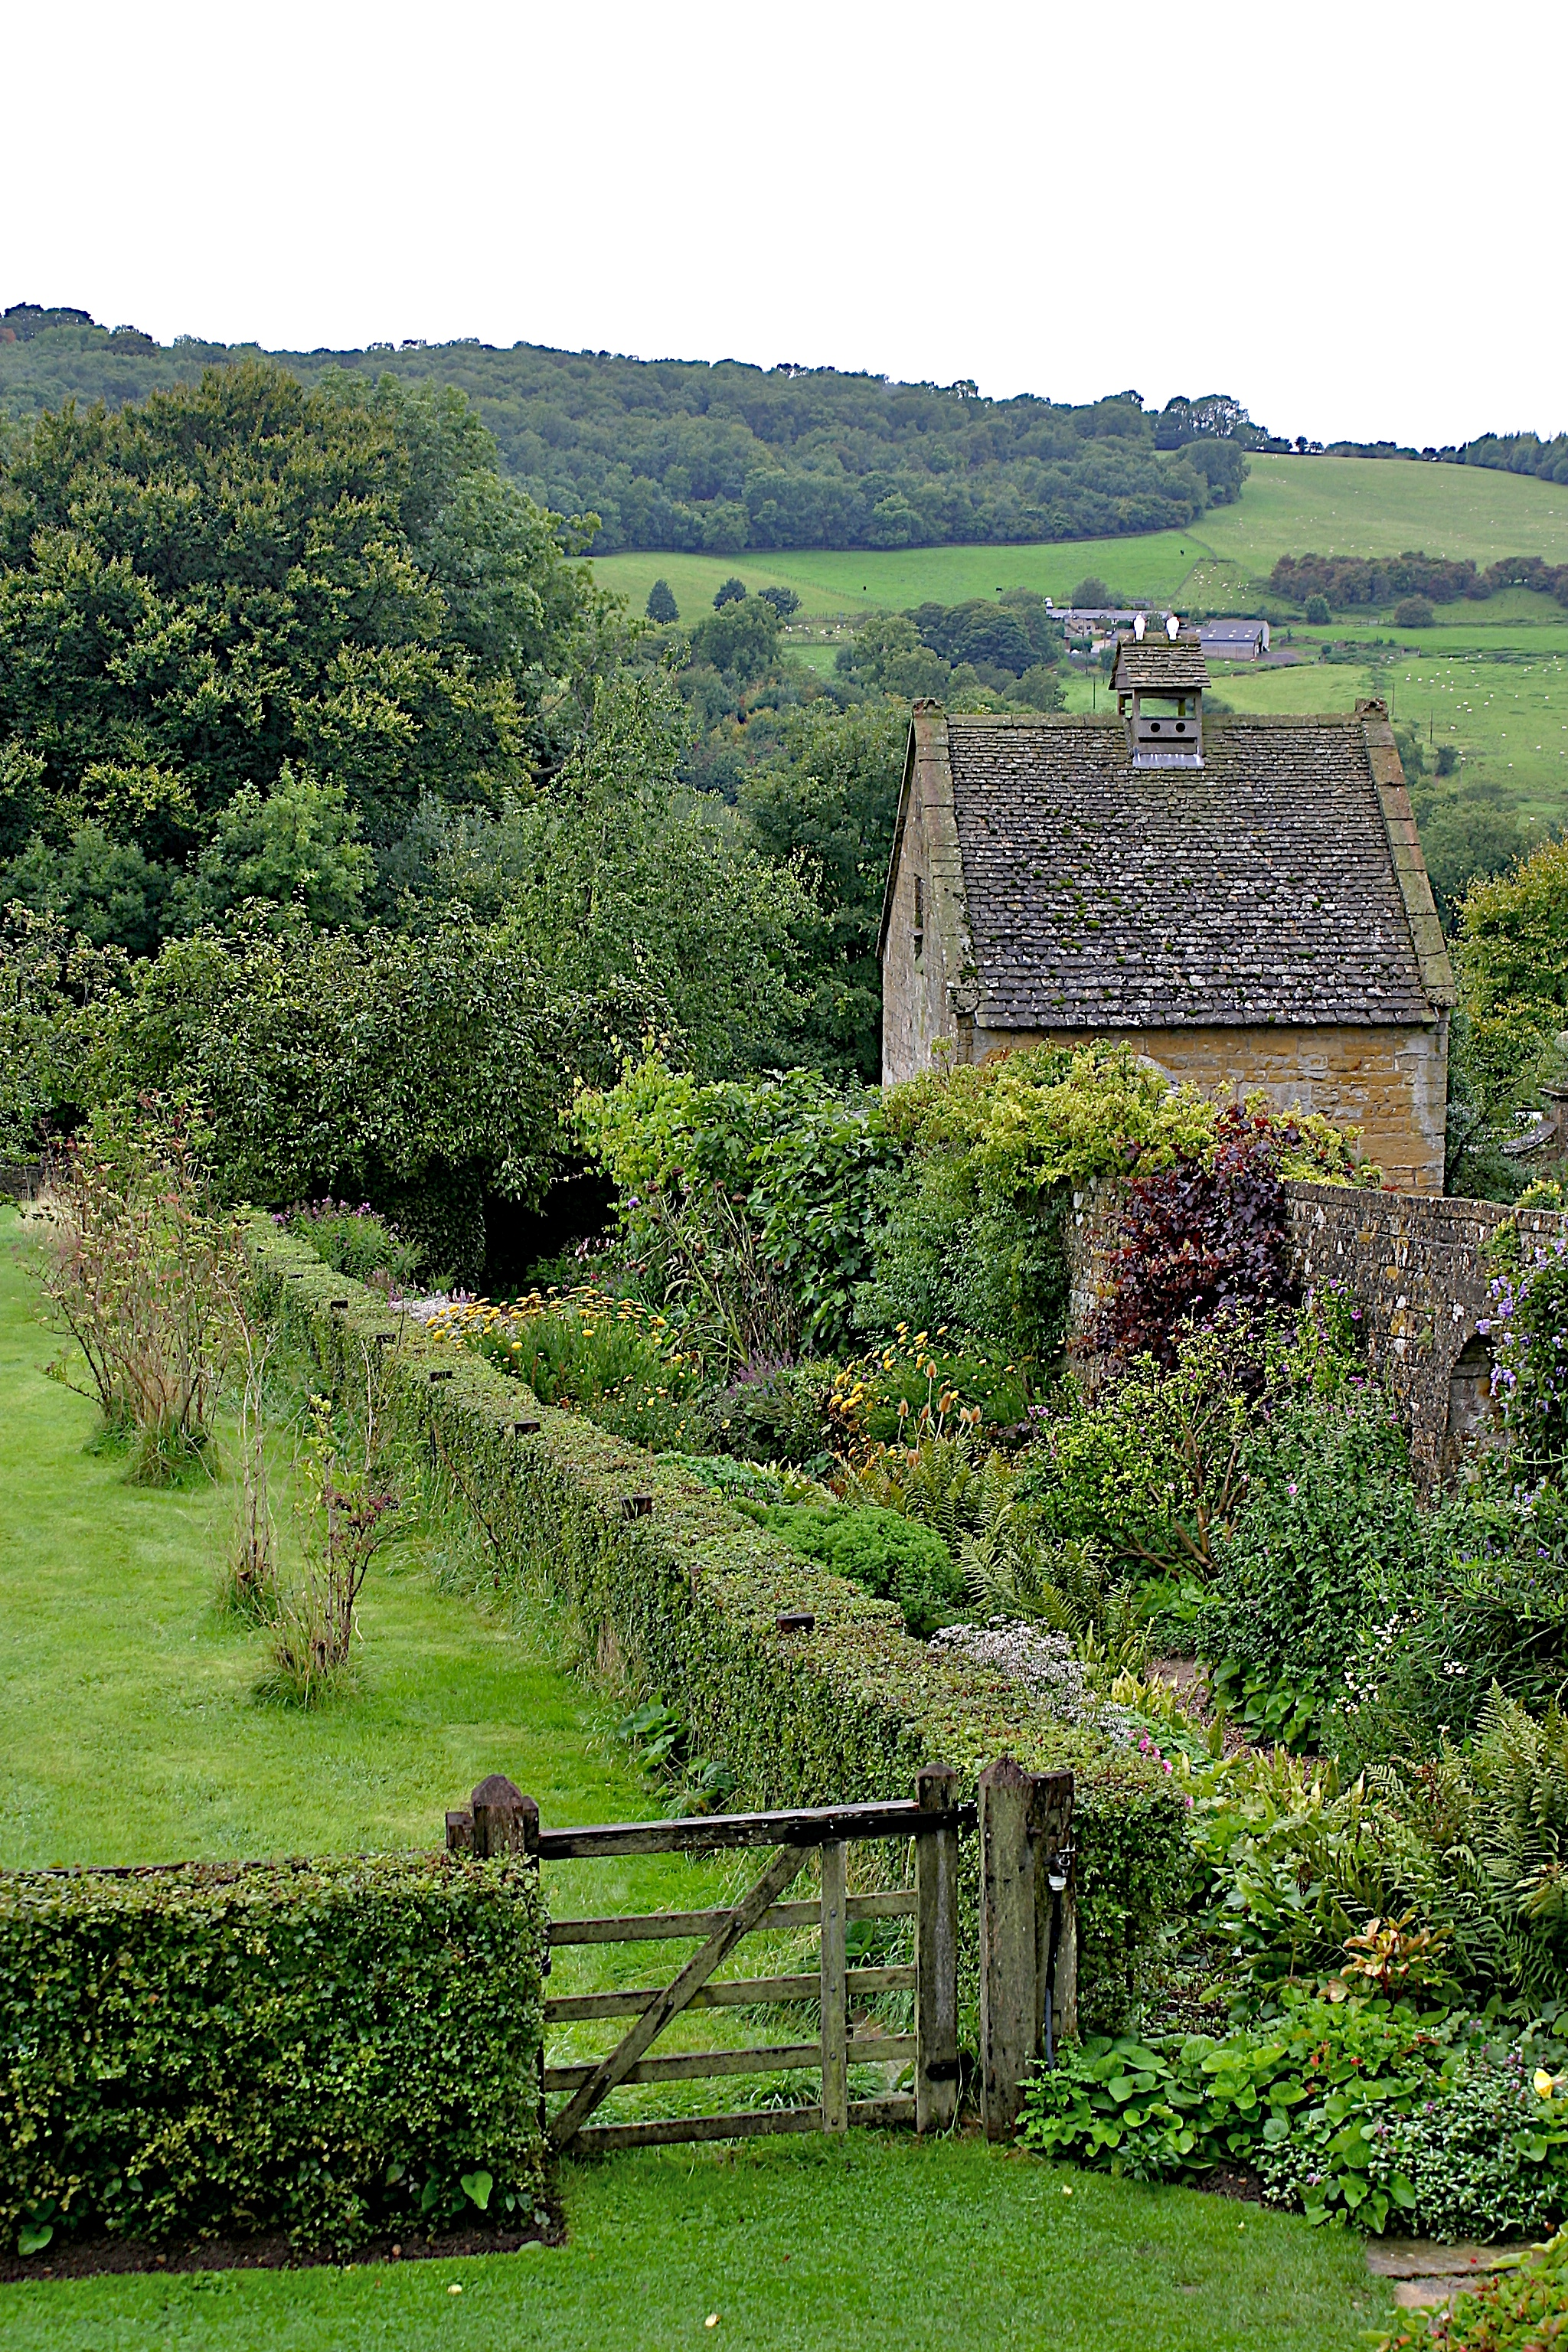 Garden at Snowshill Manor, looking west